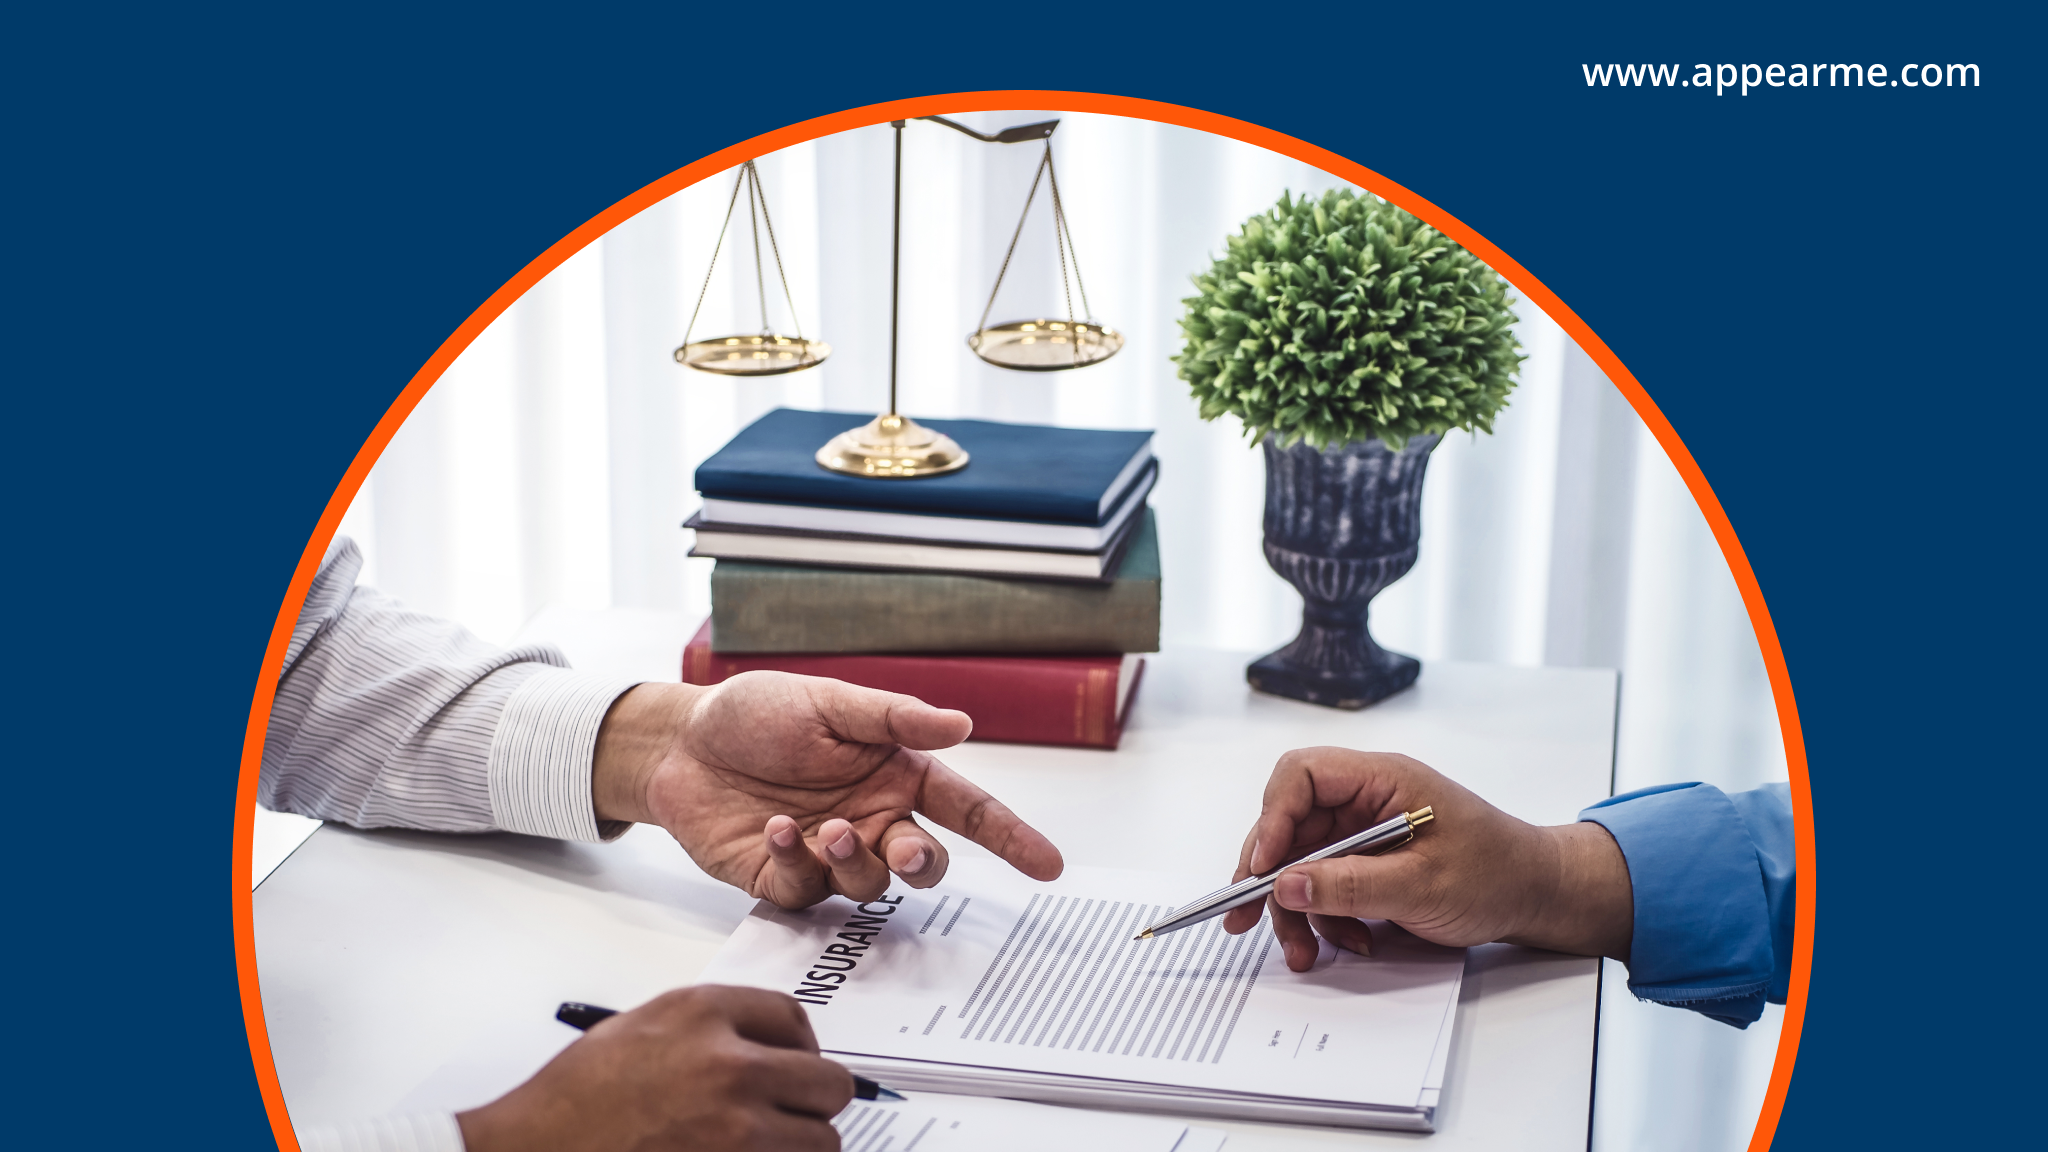 When Do You Need to Hire a Medical Expert Witness?